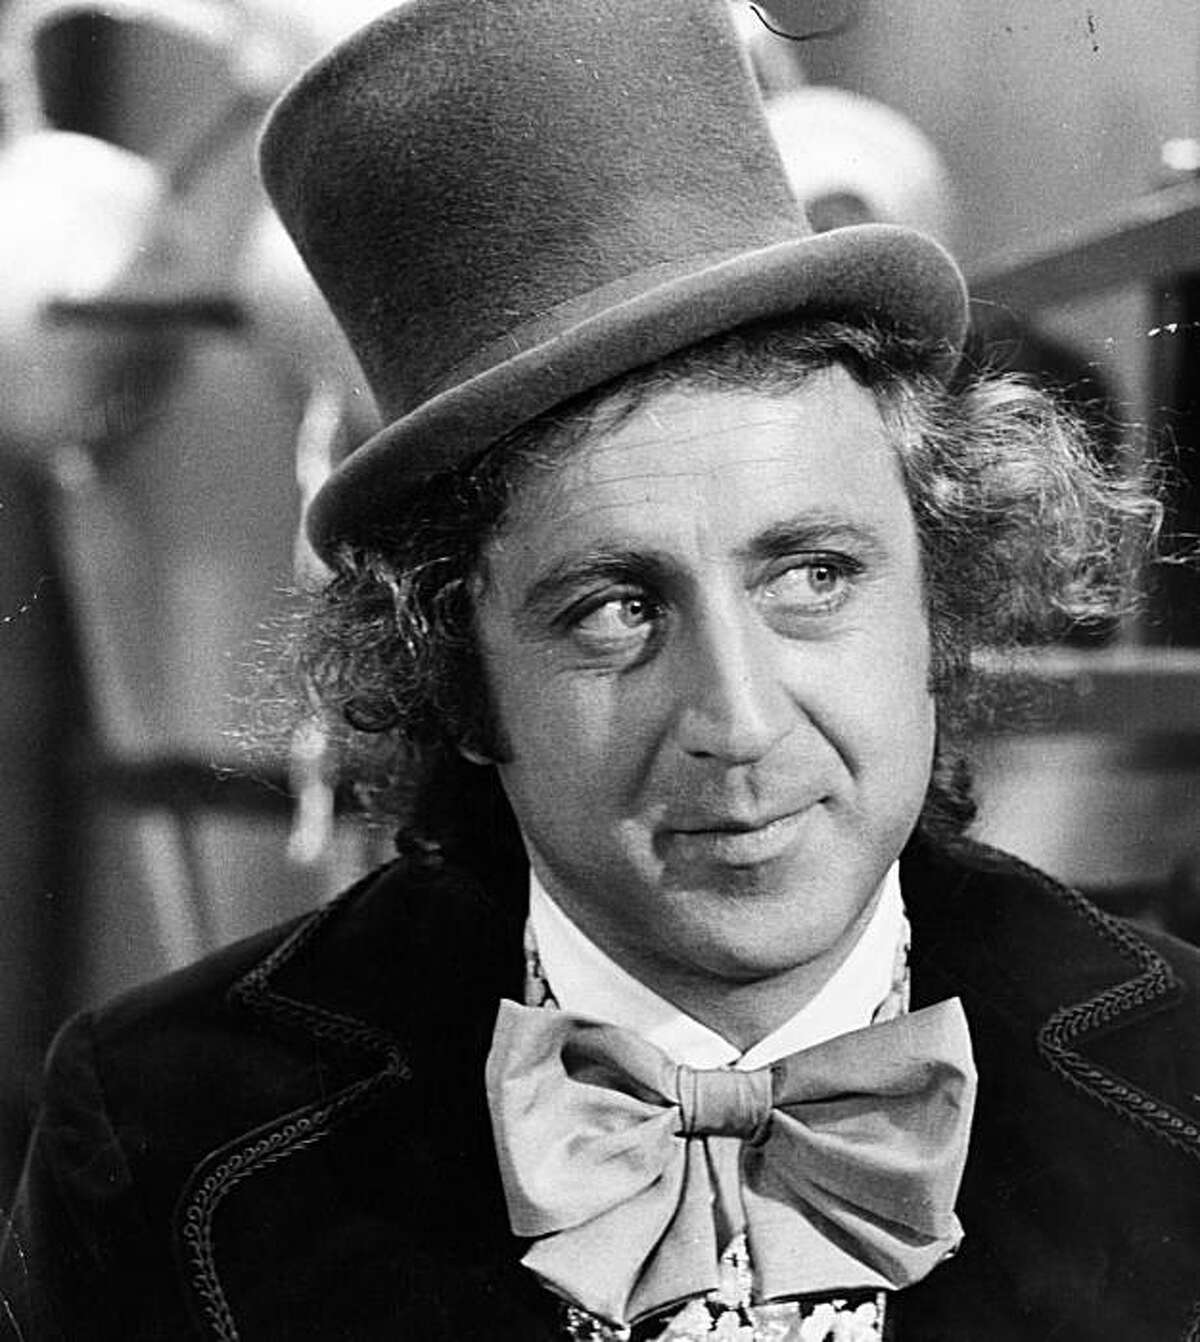 Gene Wilder as Willy Wonka in Willy Wonka & the Chocolate Factory. 1971 Distributed by Paramount Pictures (original release); later Warner Bros.